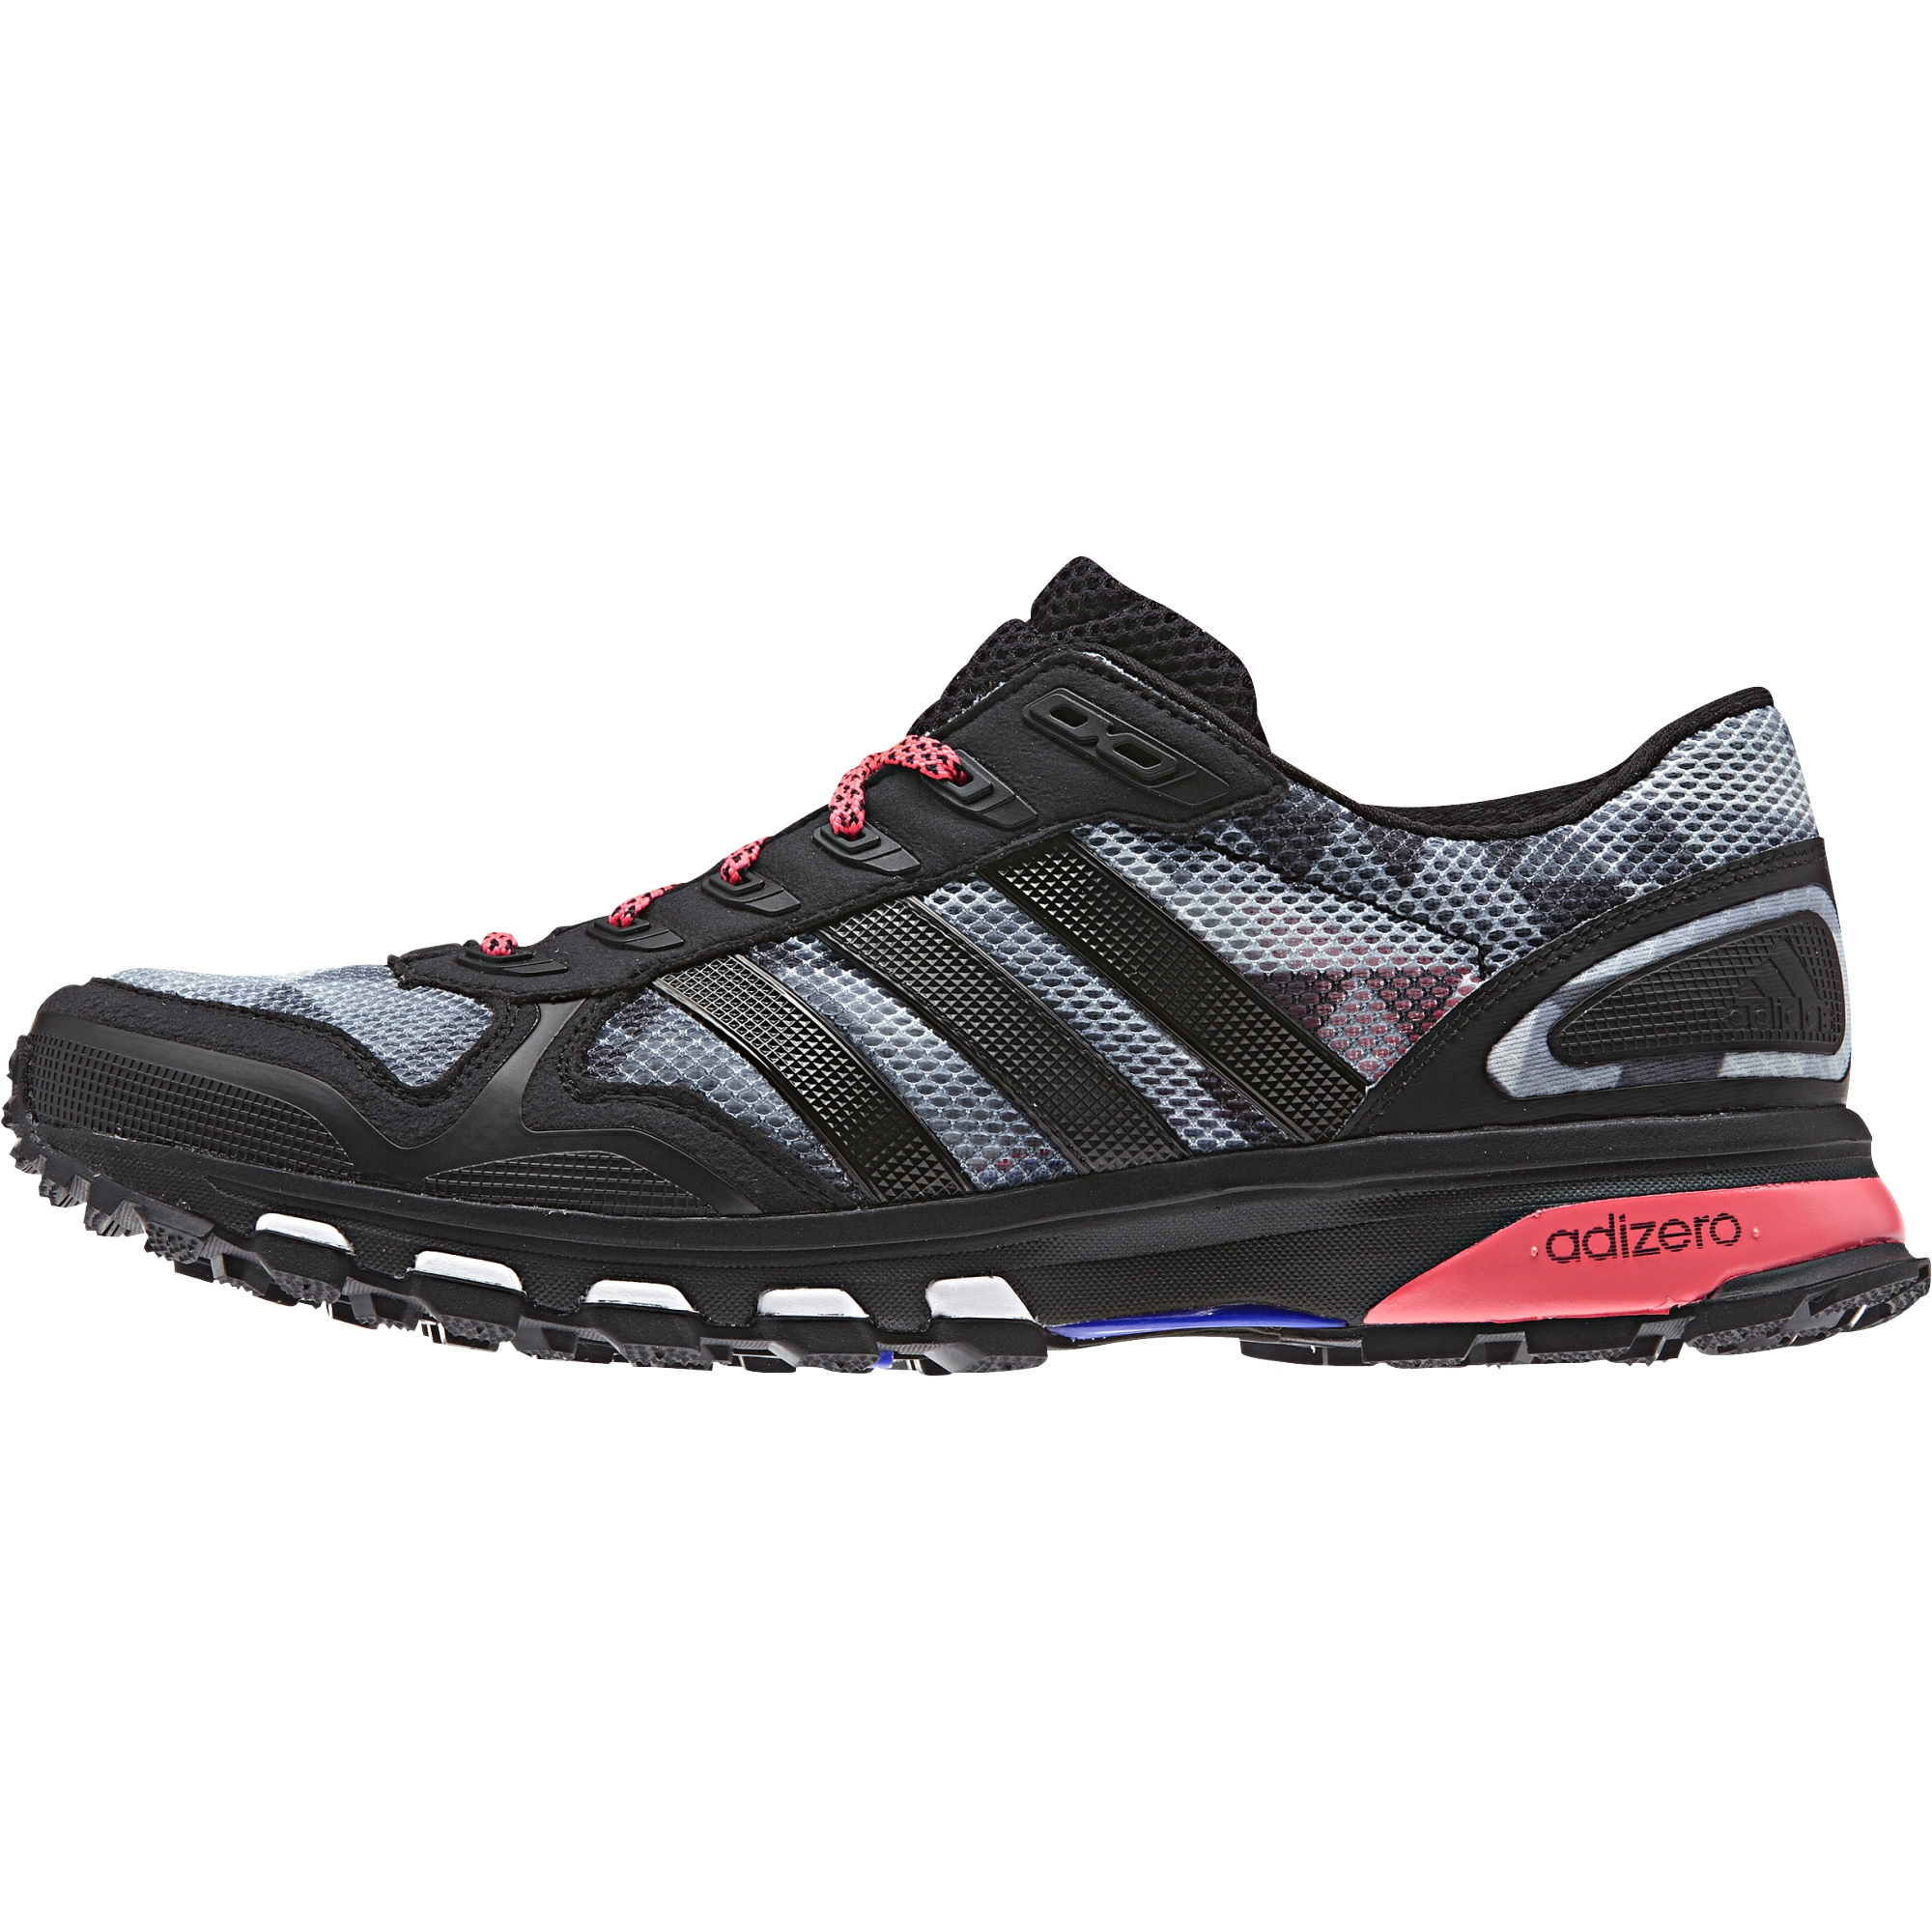 huge selection of ca844 7ef7e ... adidas adizero xt5 test ...